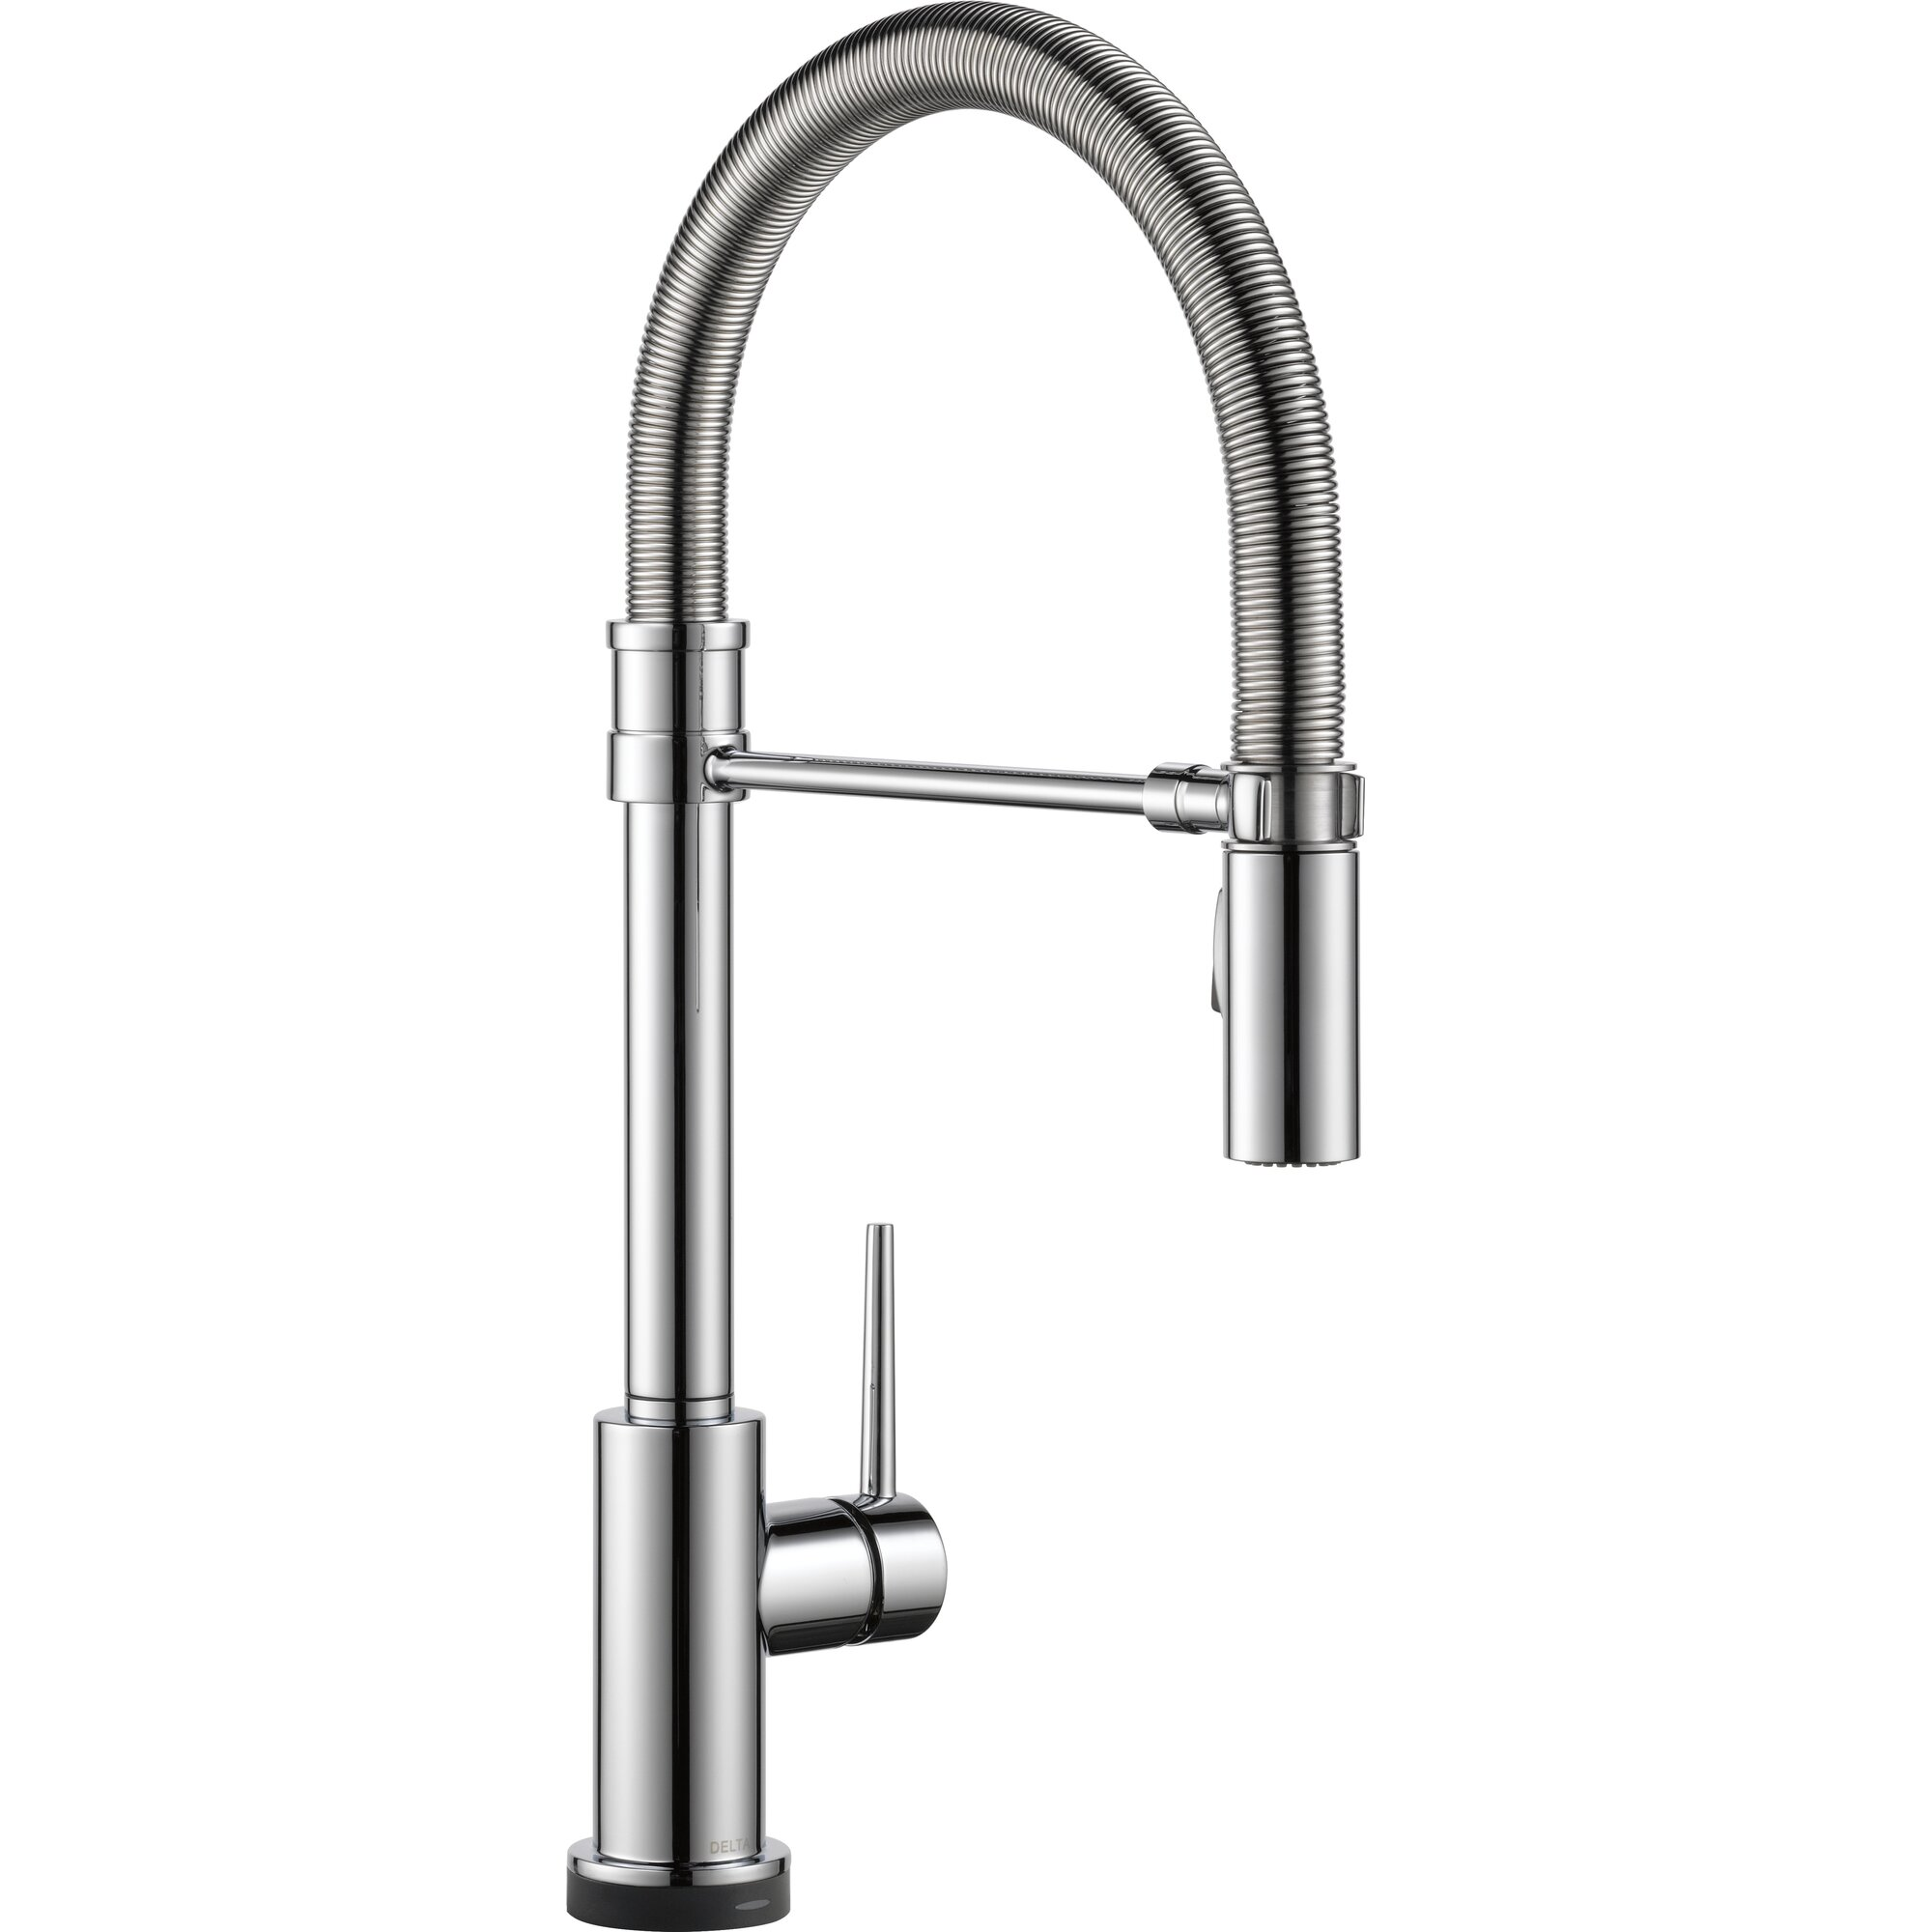 Delta Trinsic Pro Single Handle Deck Mounted Pull Down